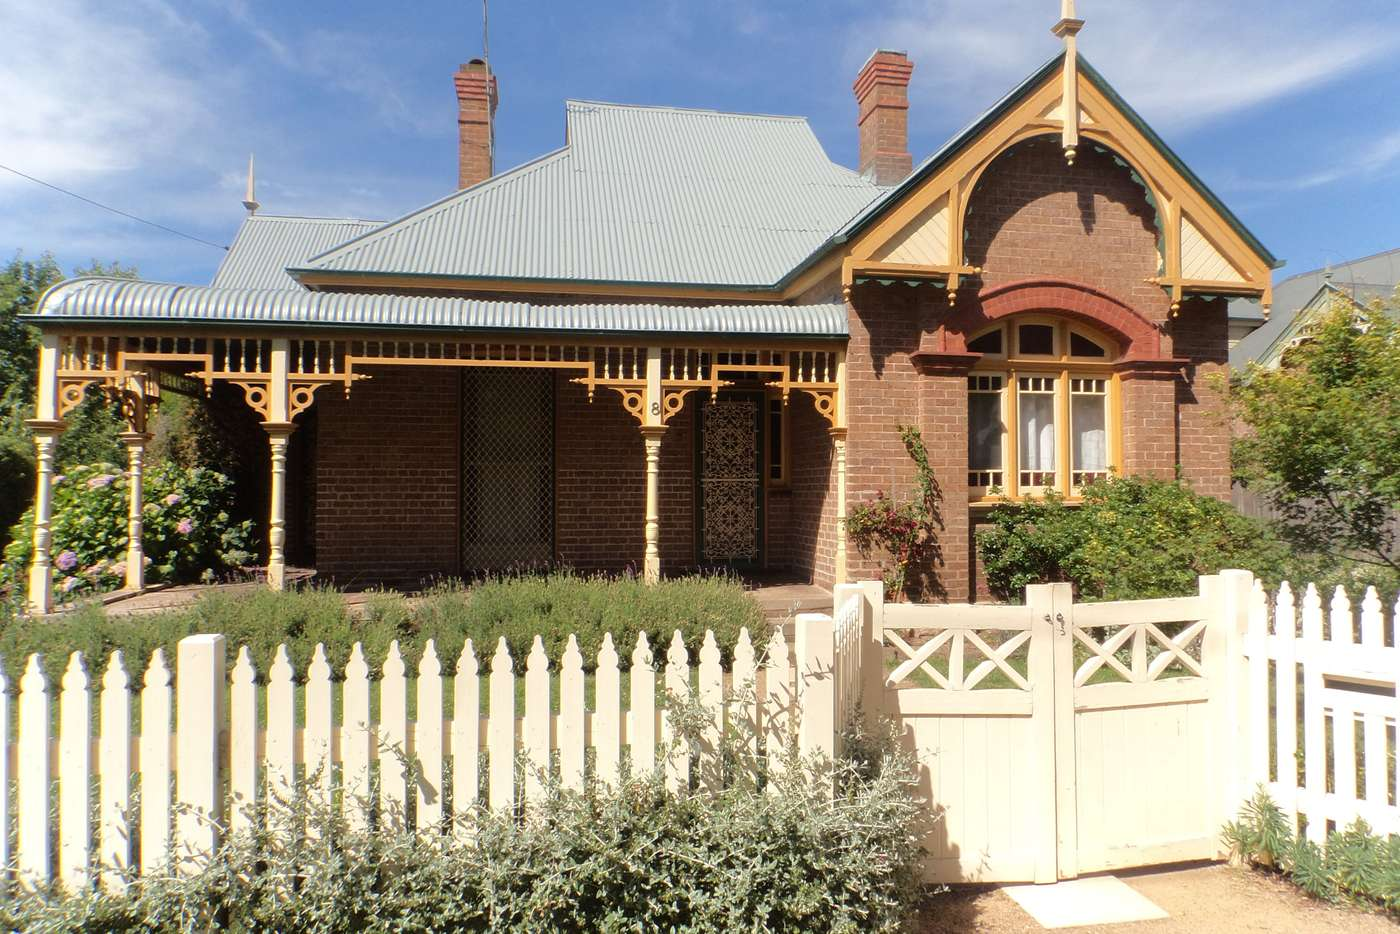 Main view of Homely house listing, 8 Beppo Street, Goulburn NSW 2580